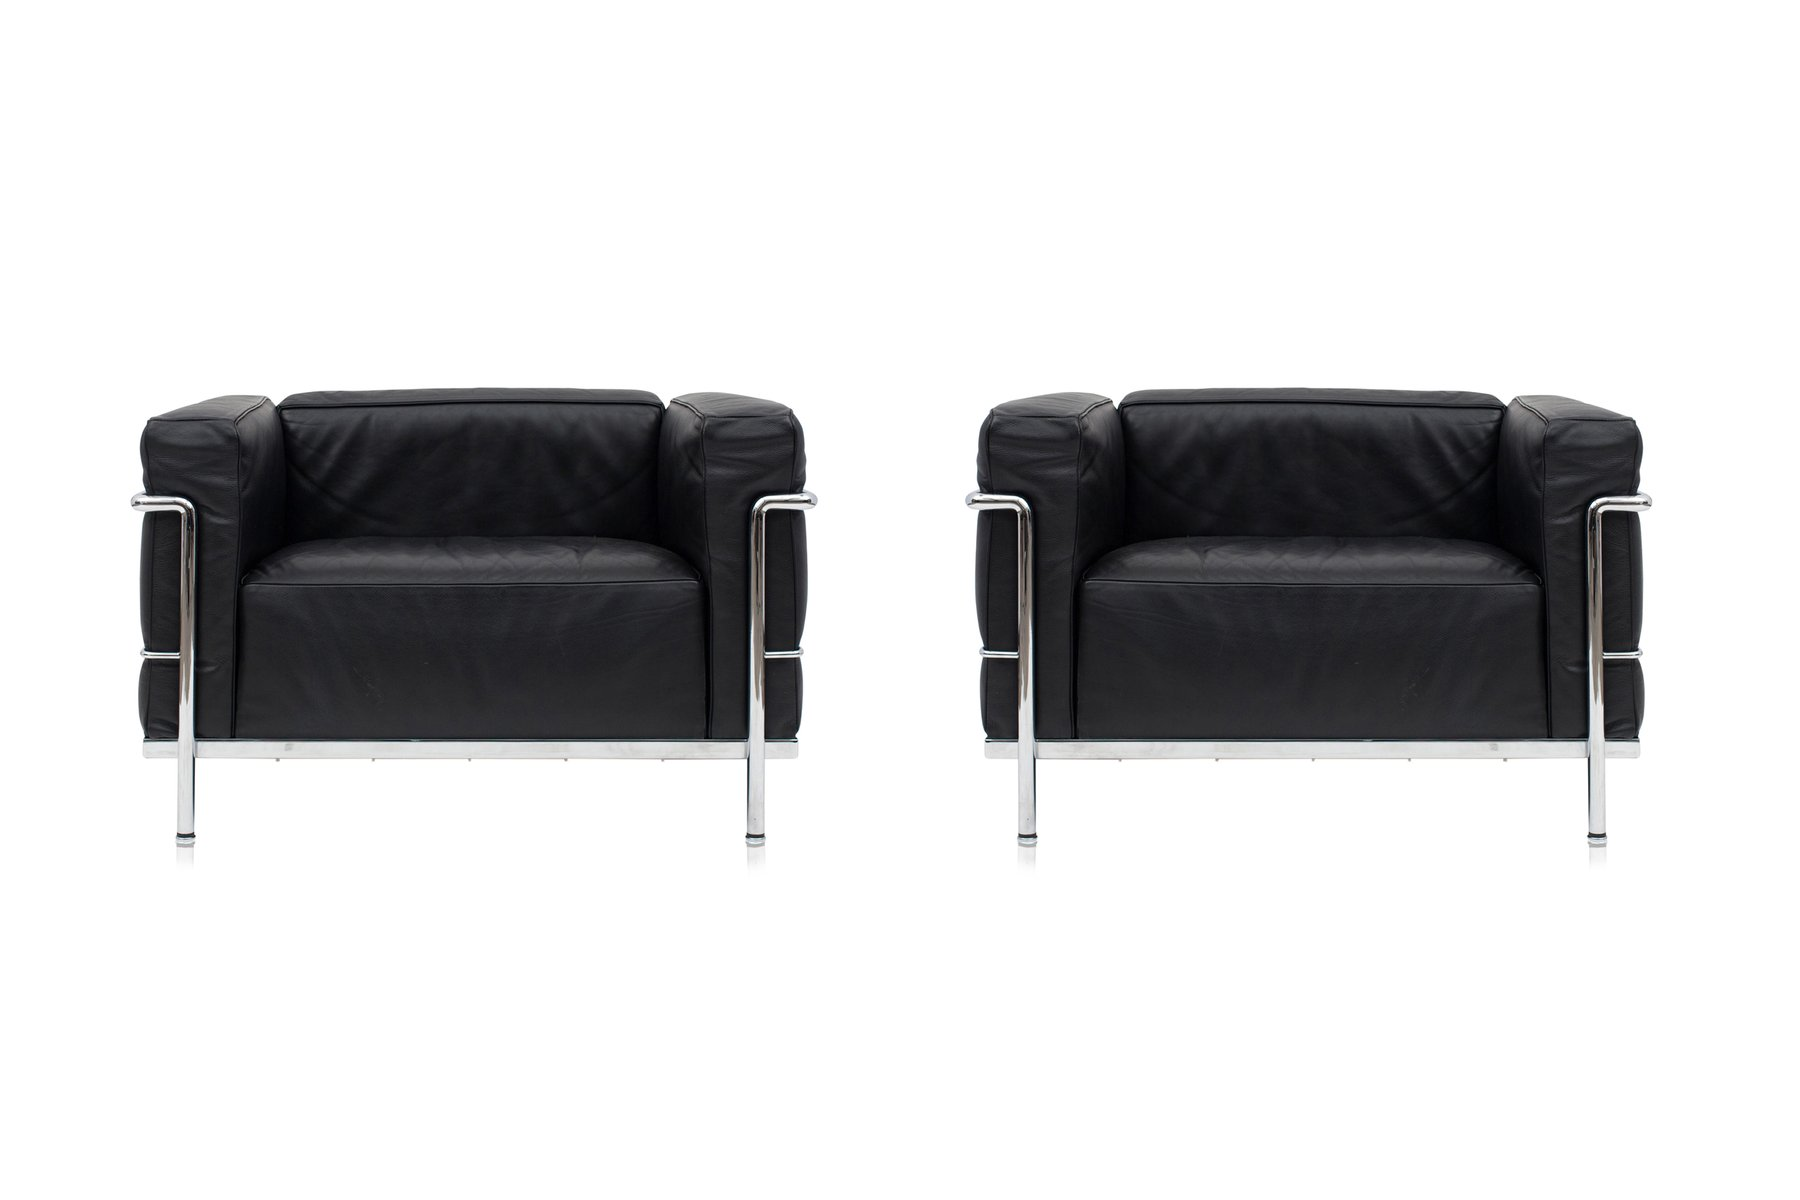 Lc3 Black Poltrona Lounge Chairs From Le Corbusier For